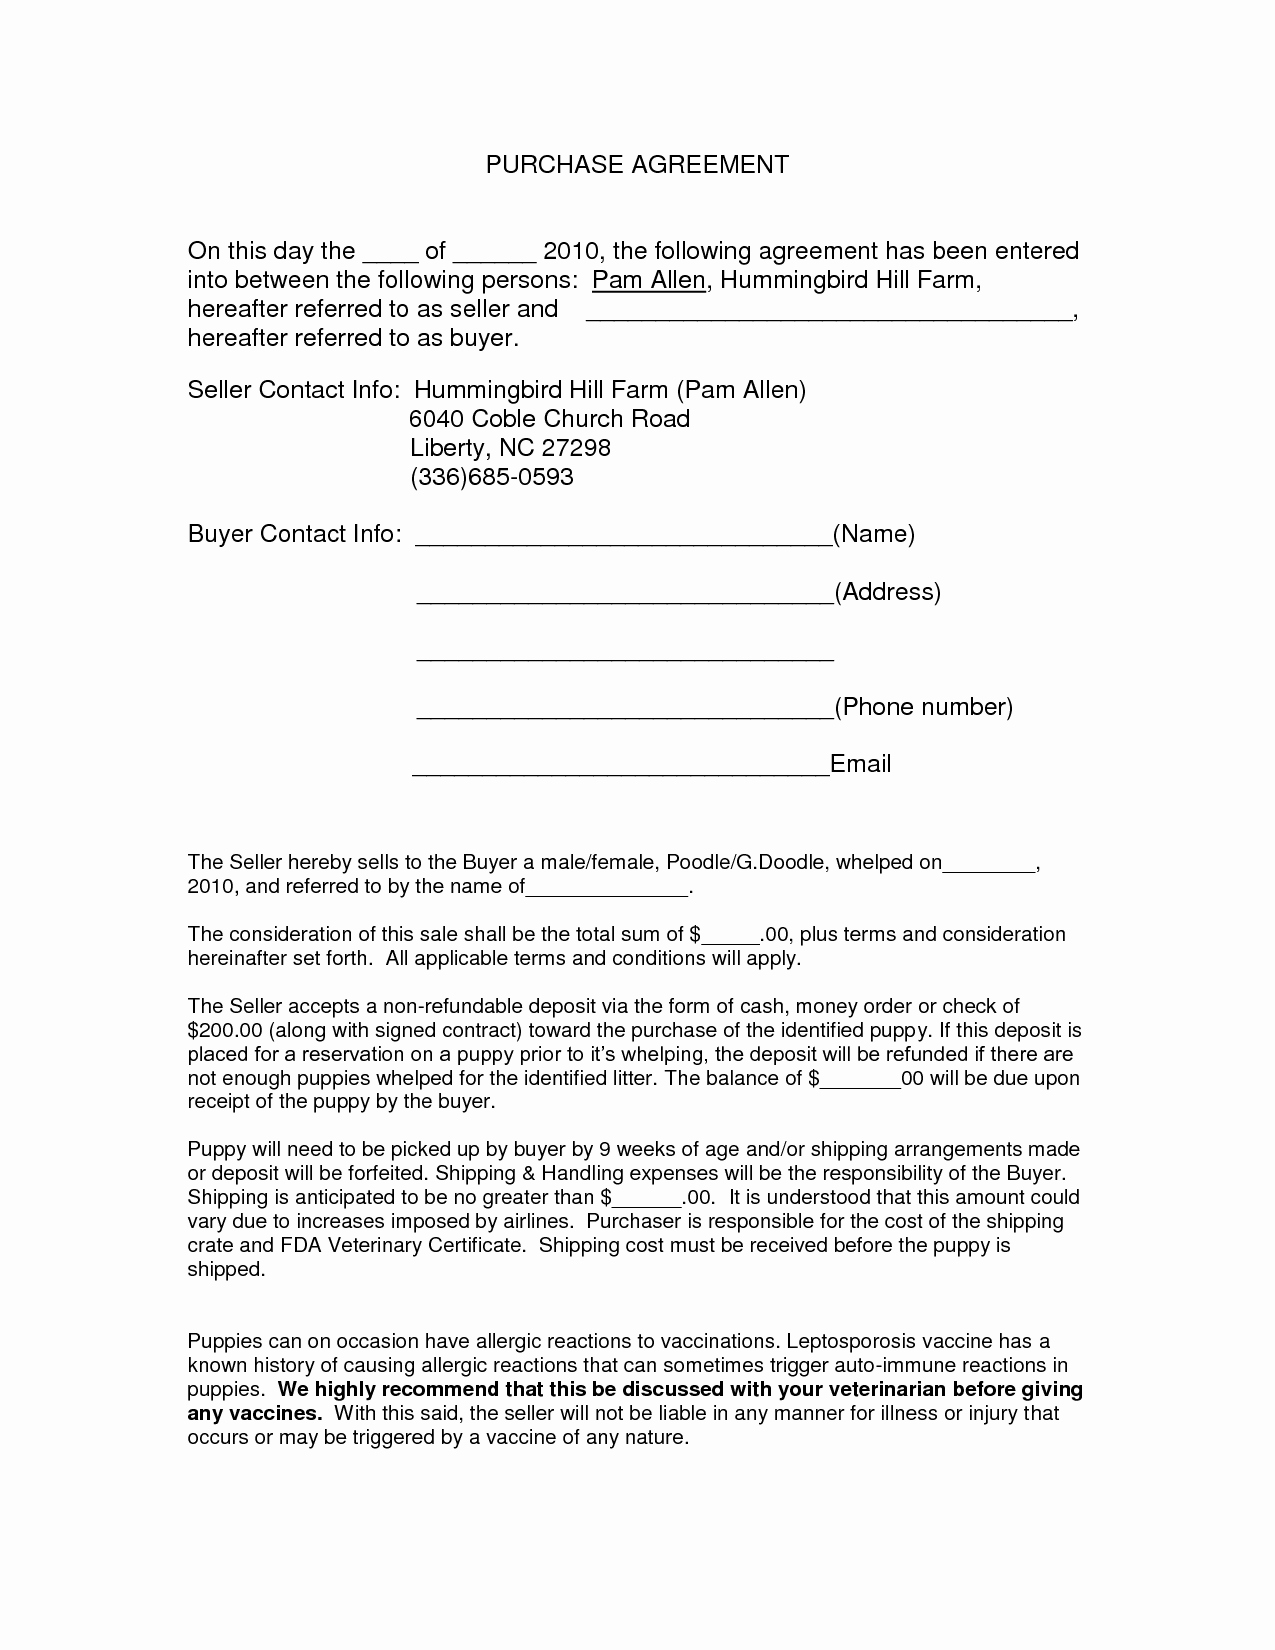 Purchase Agreement Template Free Inspirational Purchase Agreement Template Free Printable Documents